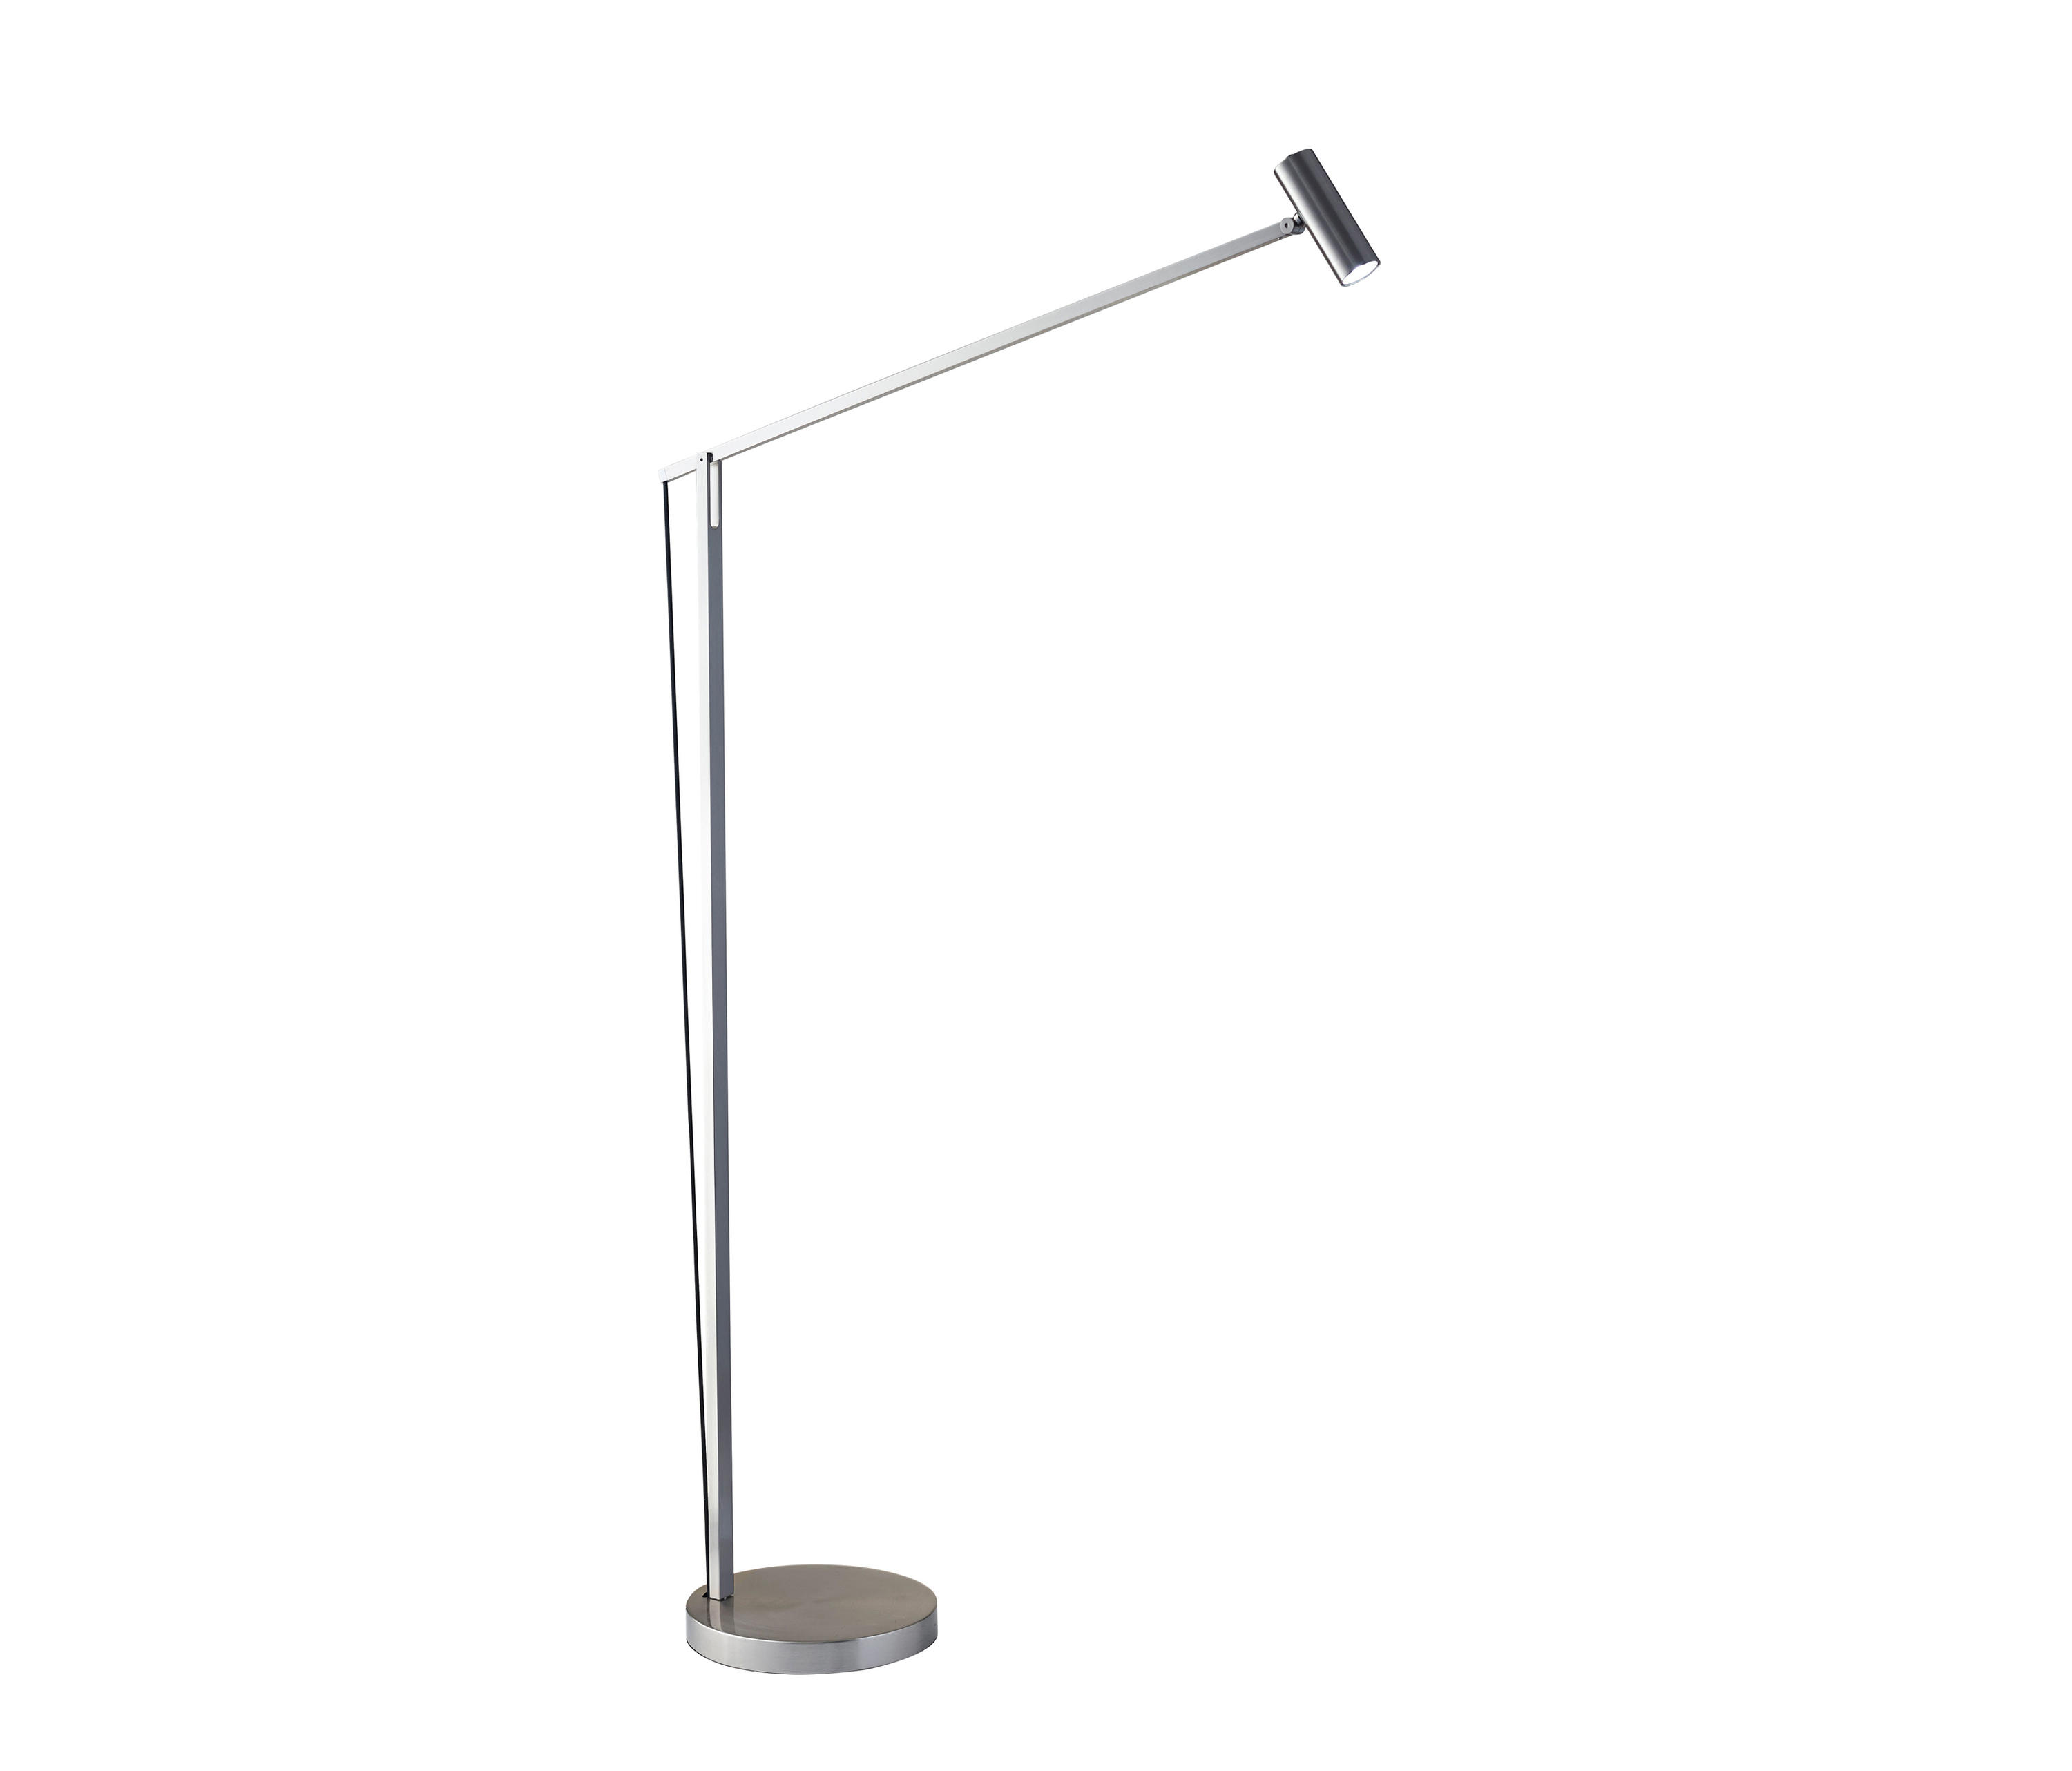 Led Floor Spotlights Crane Led Floor Lamp General Lighting From Ads360